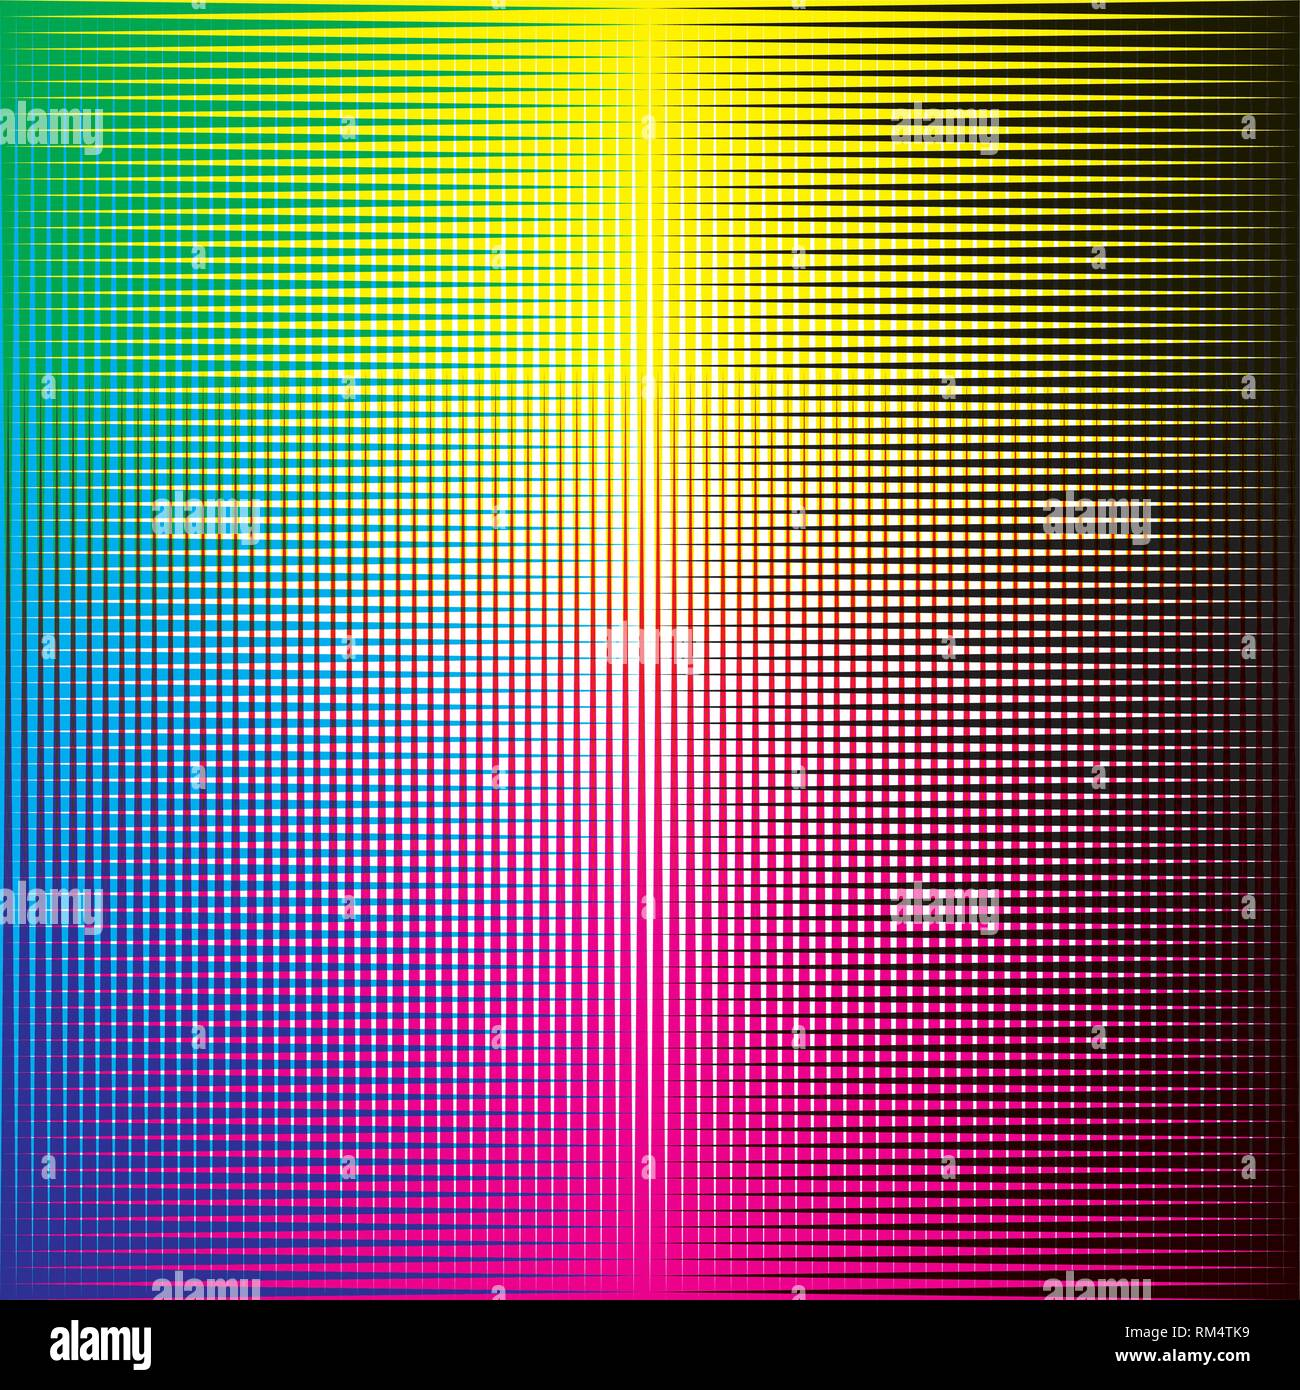 CMYK halftone background vector - Stock Image